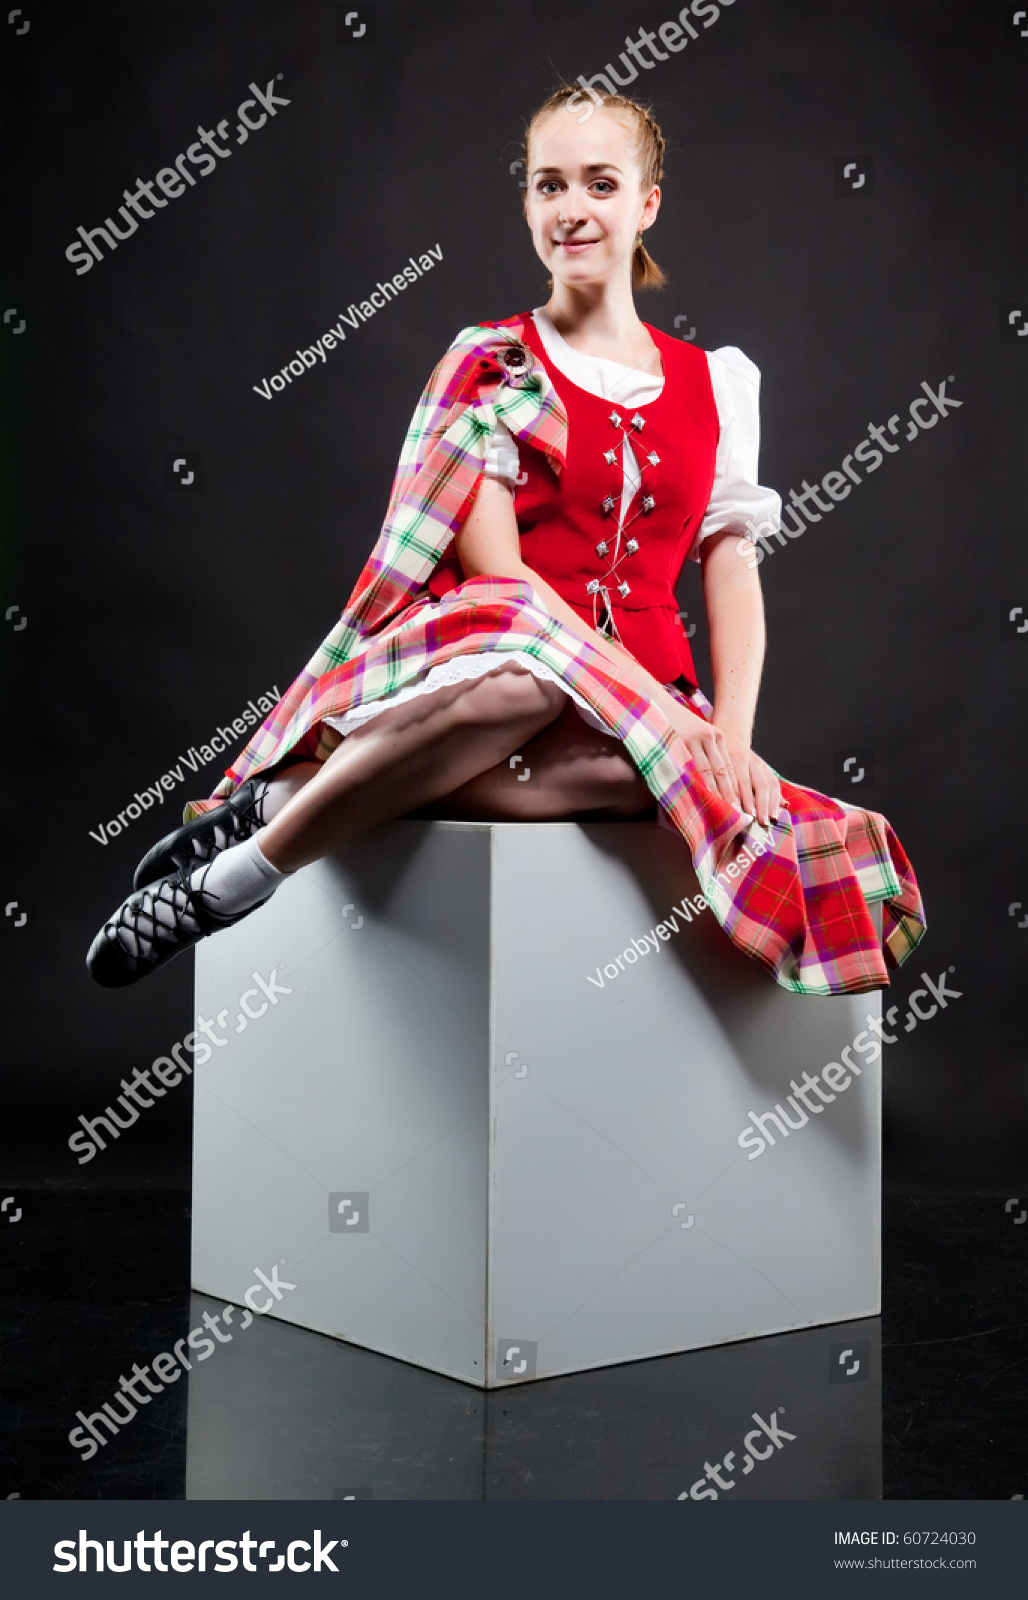 The girl dancing the Scottish dance in a kilt sitting on a white cube